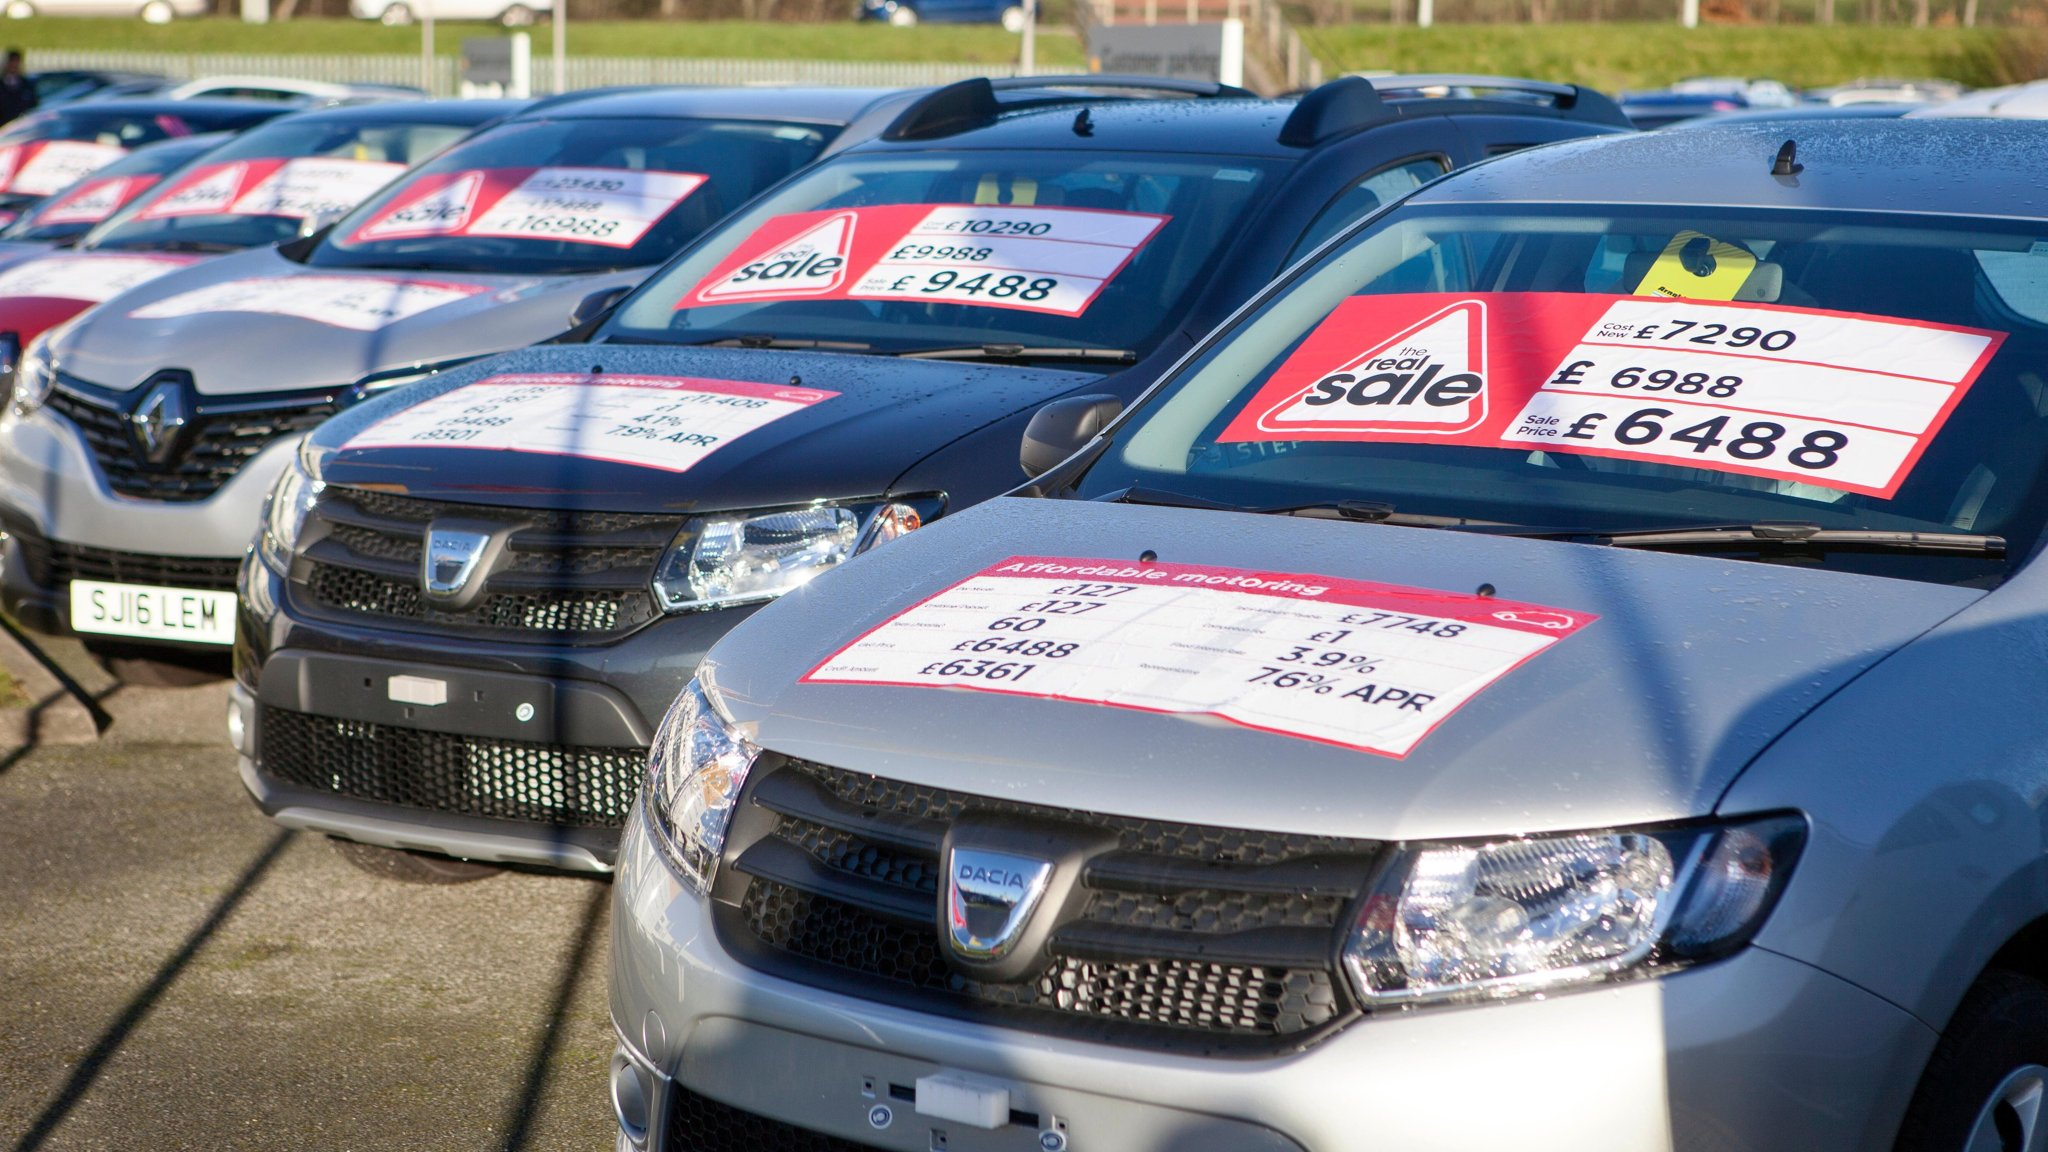 Used Autos Unique Car Leasing Groups Switch Focus to Used Vehicles